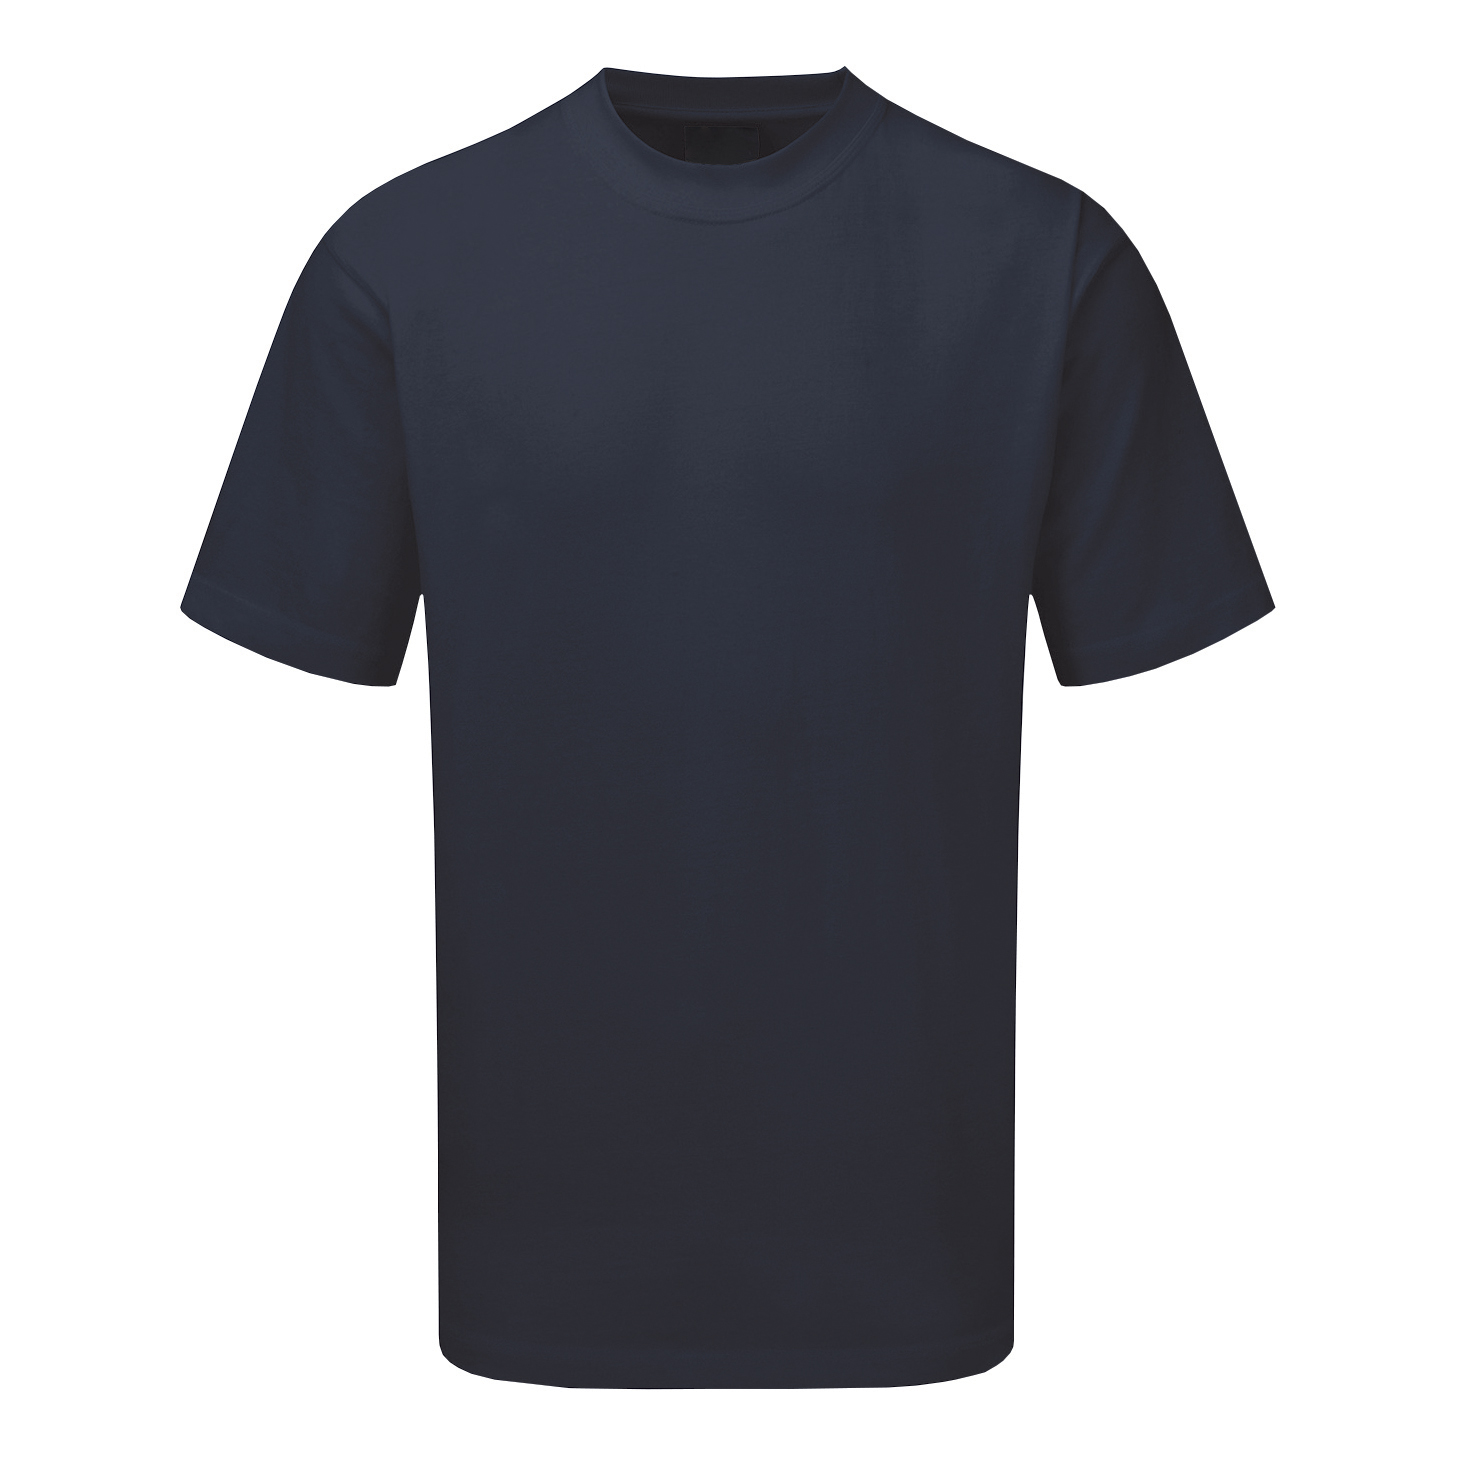 Premium T-Shirt Polycotton Triple Stitched 2XL Navy Blue